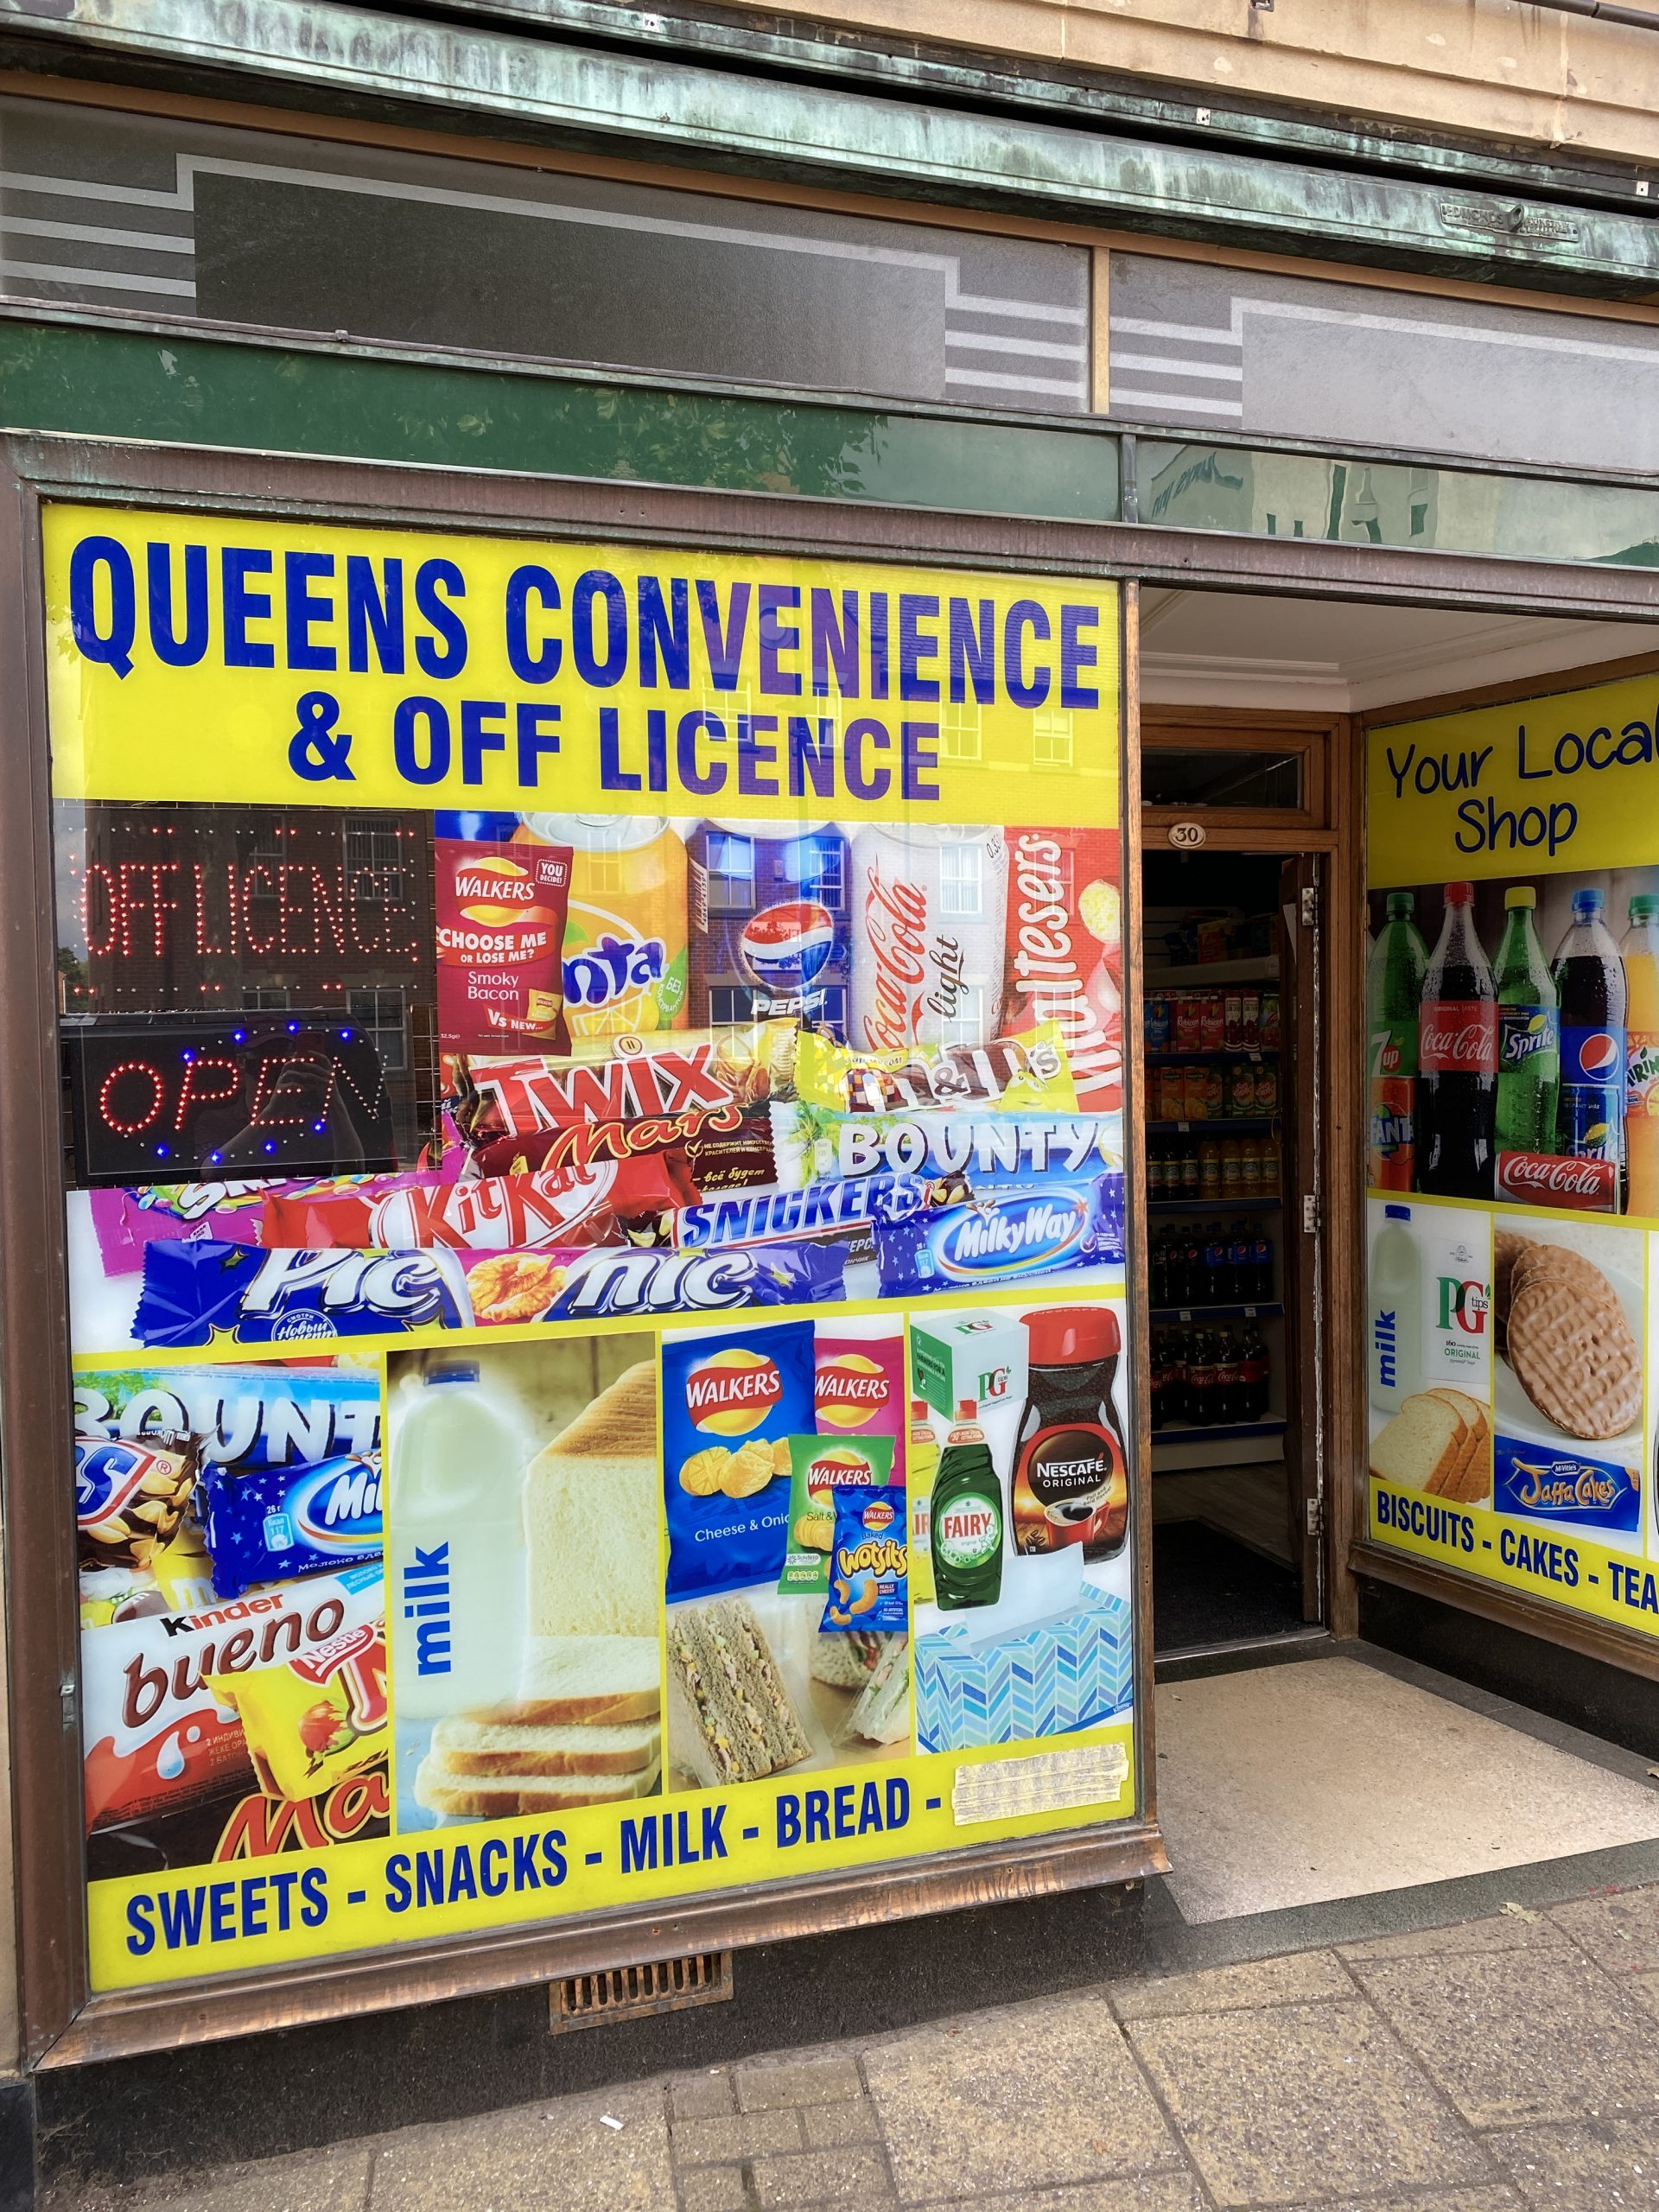 Queens Convenience and Off License